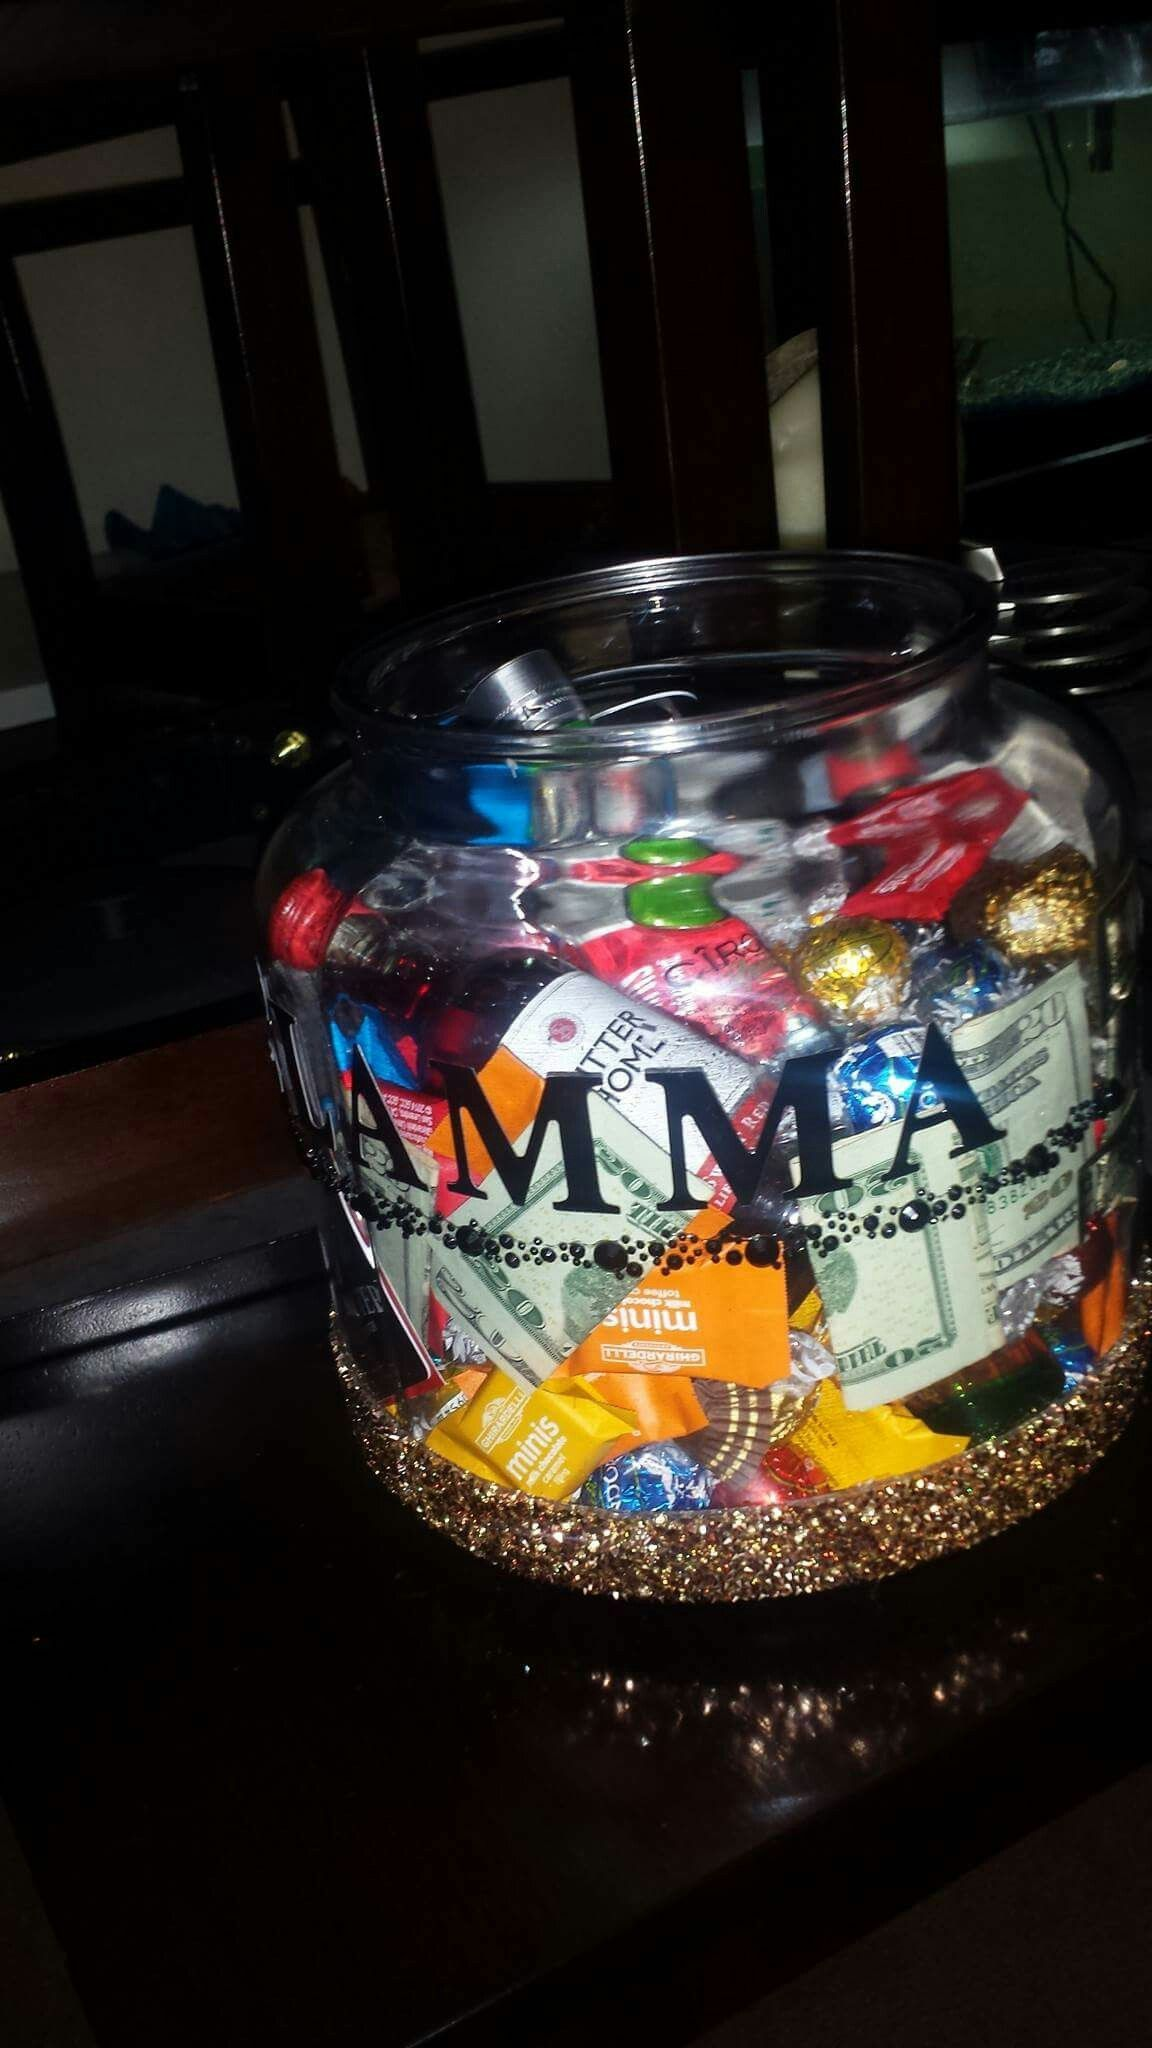 Glam-ma mother's day goodie jar